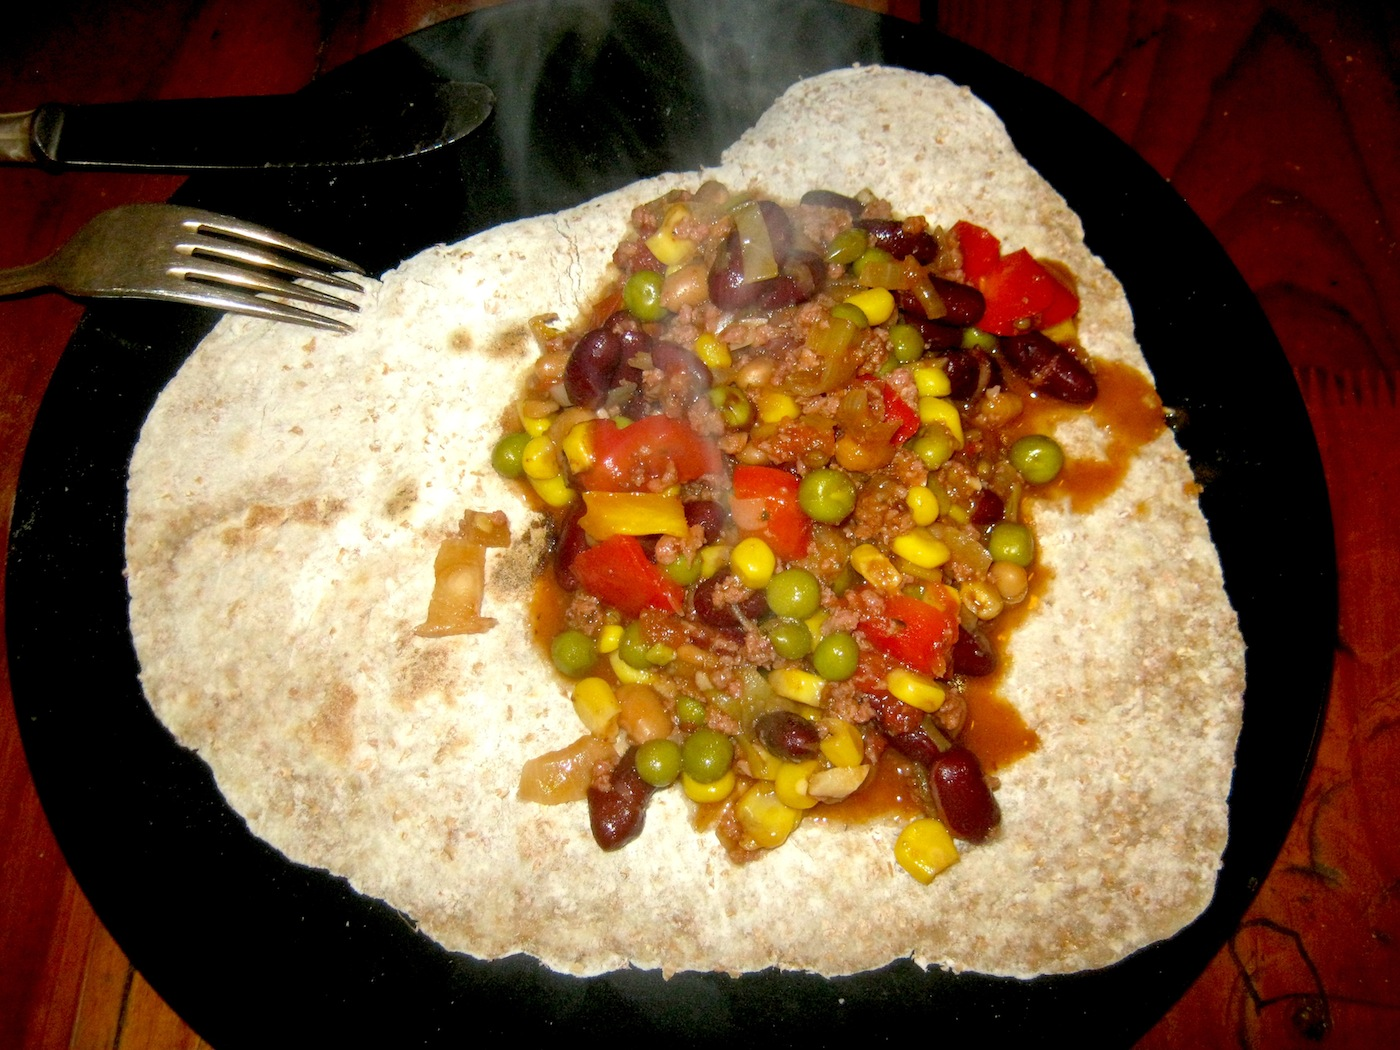 Chili con carne served on a tortilla